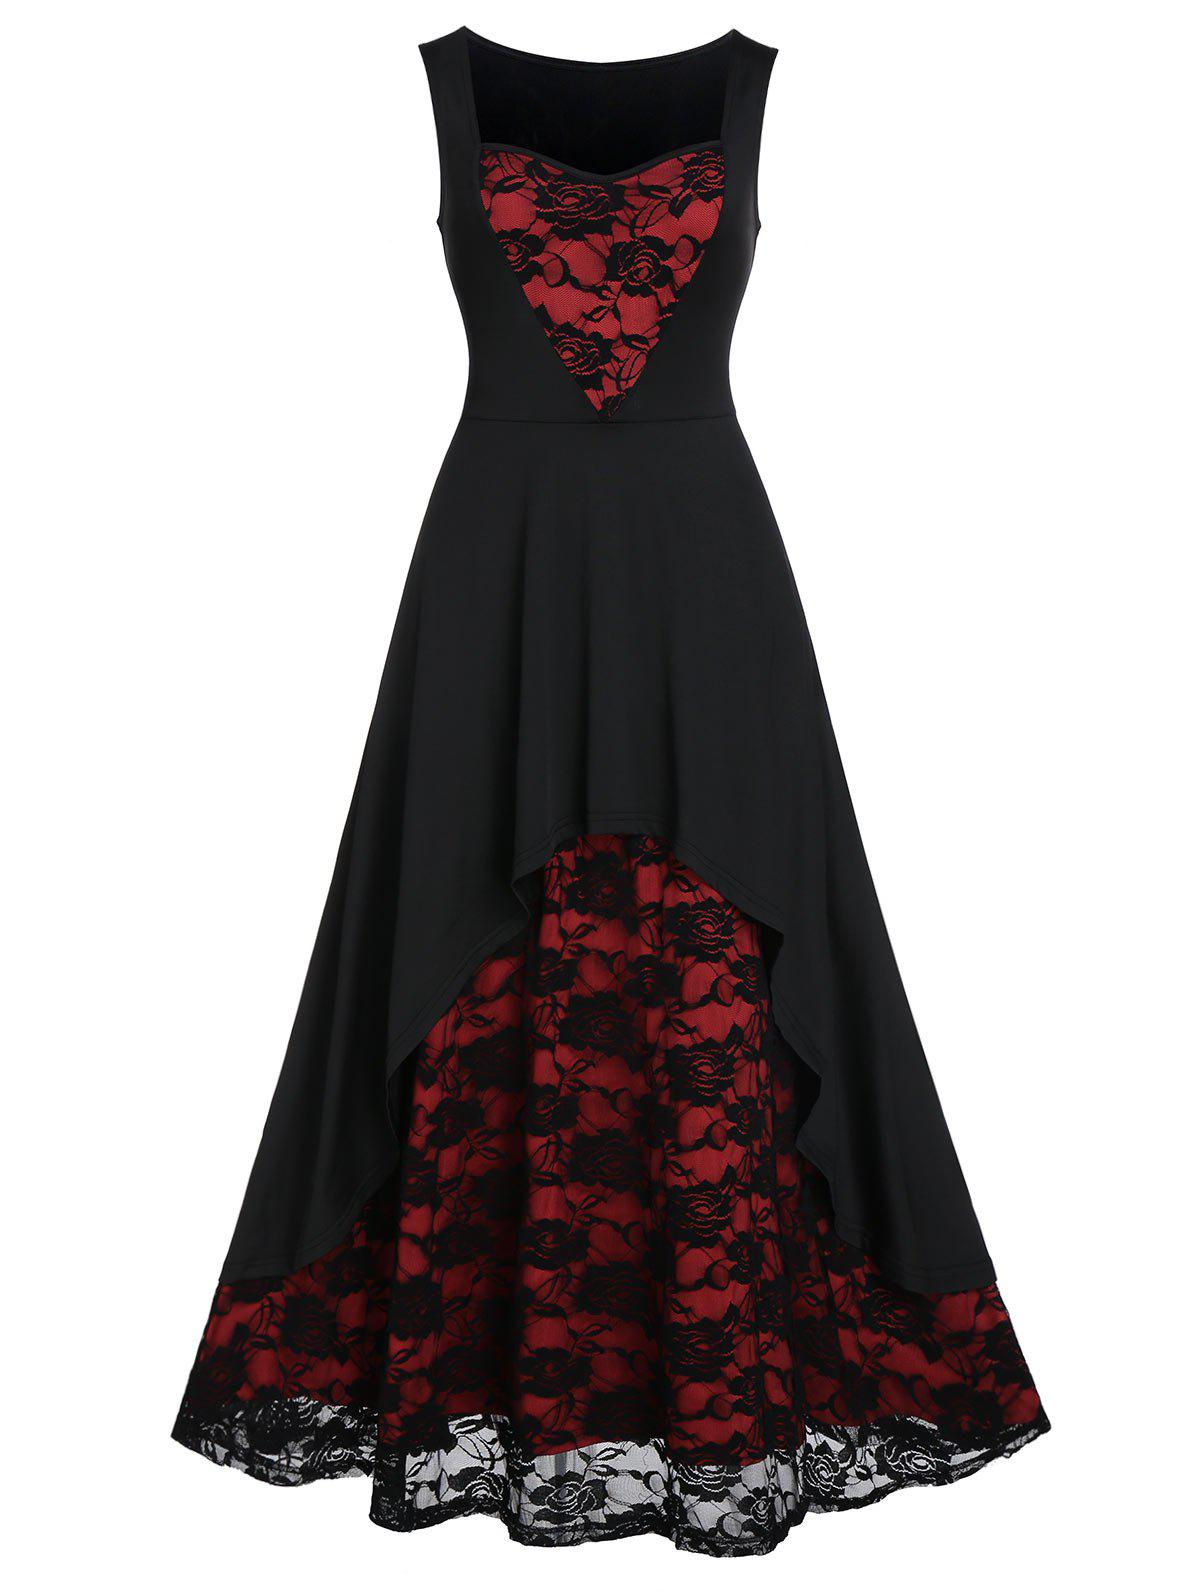 Unique Rose Lace Insert High Low Party Dress